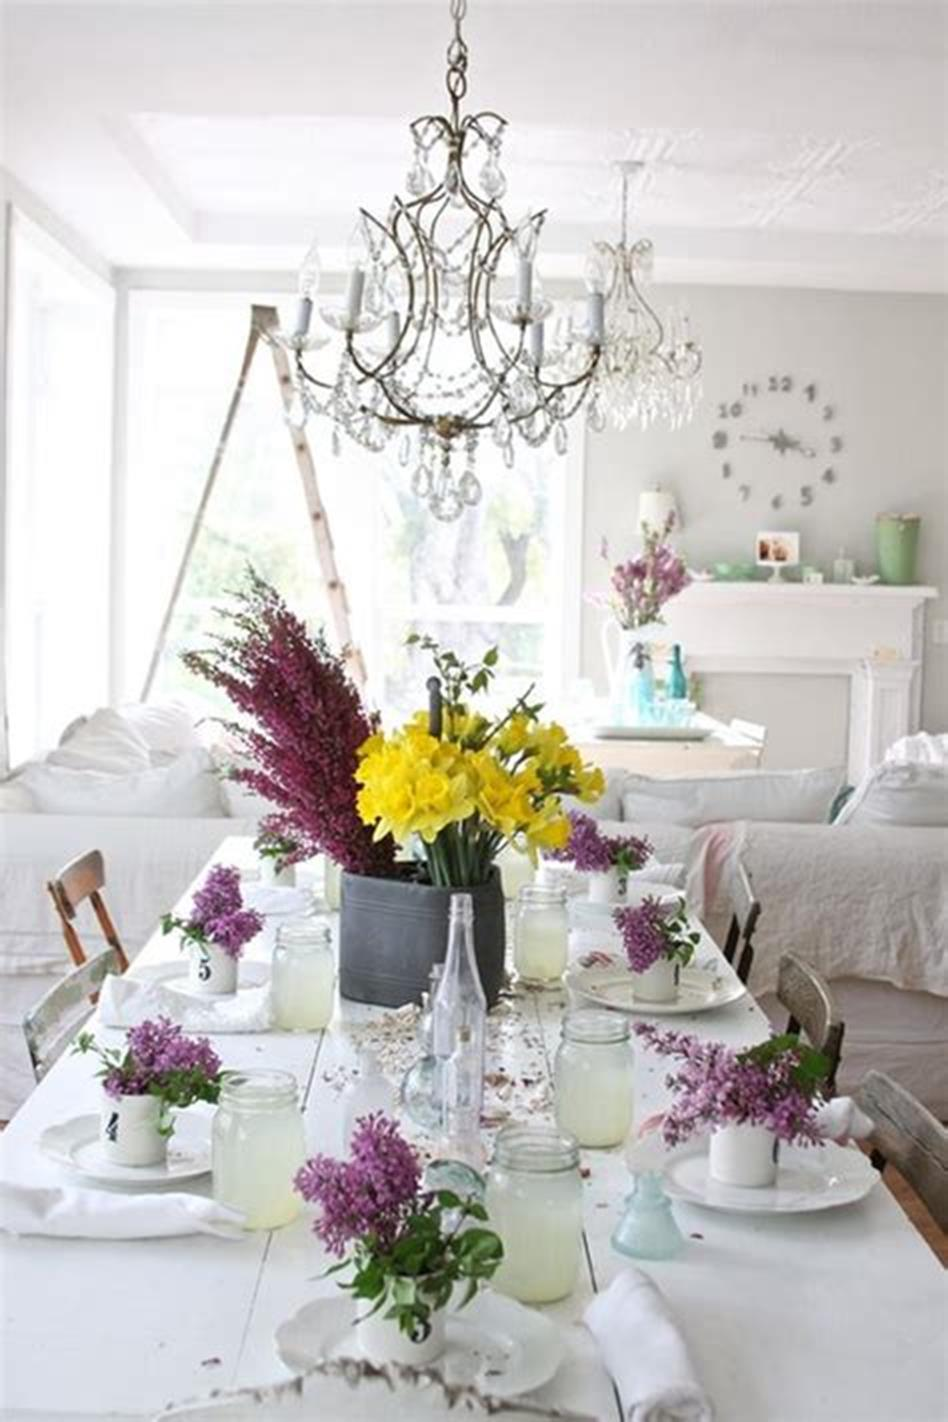 35 Stunning Spring Kitchen and Dining Room Decorating Ideas 2019 14